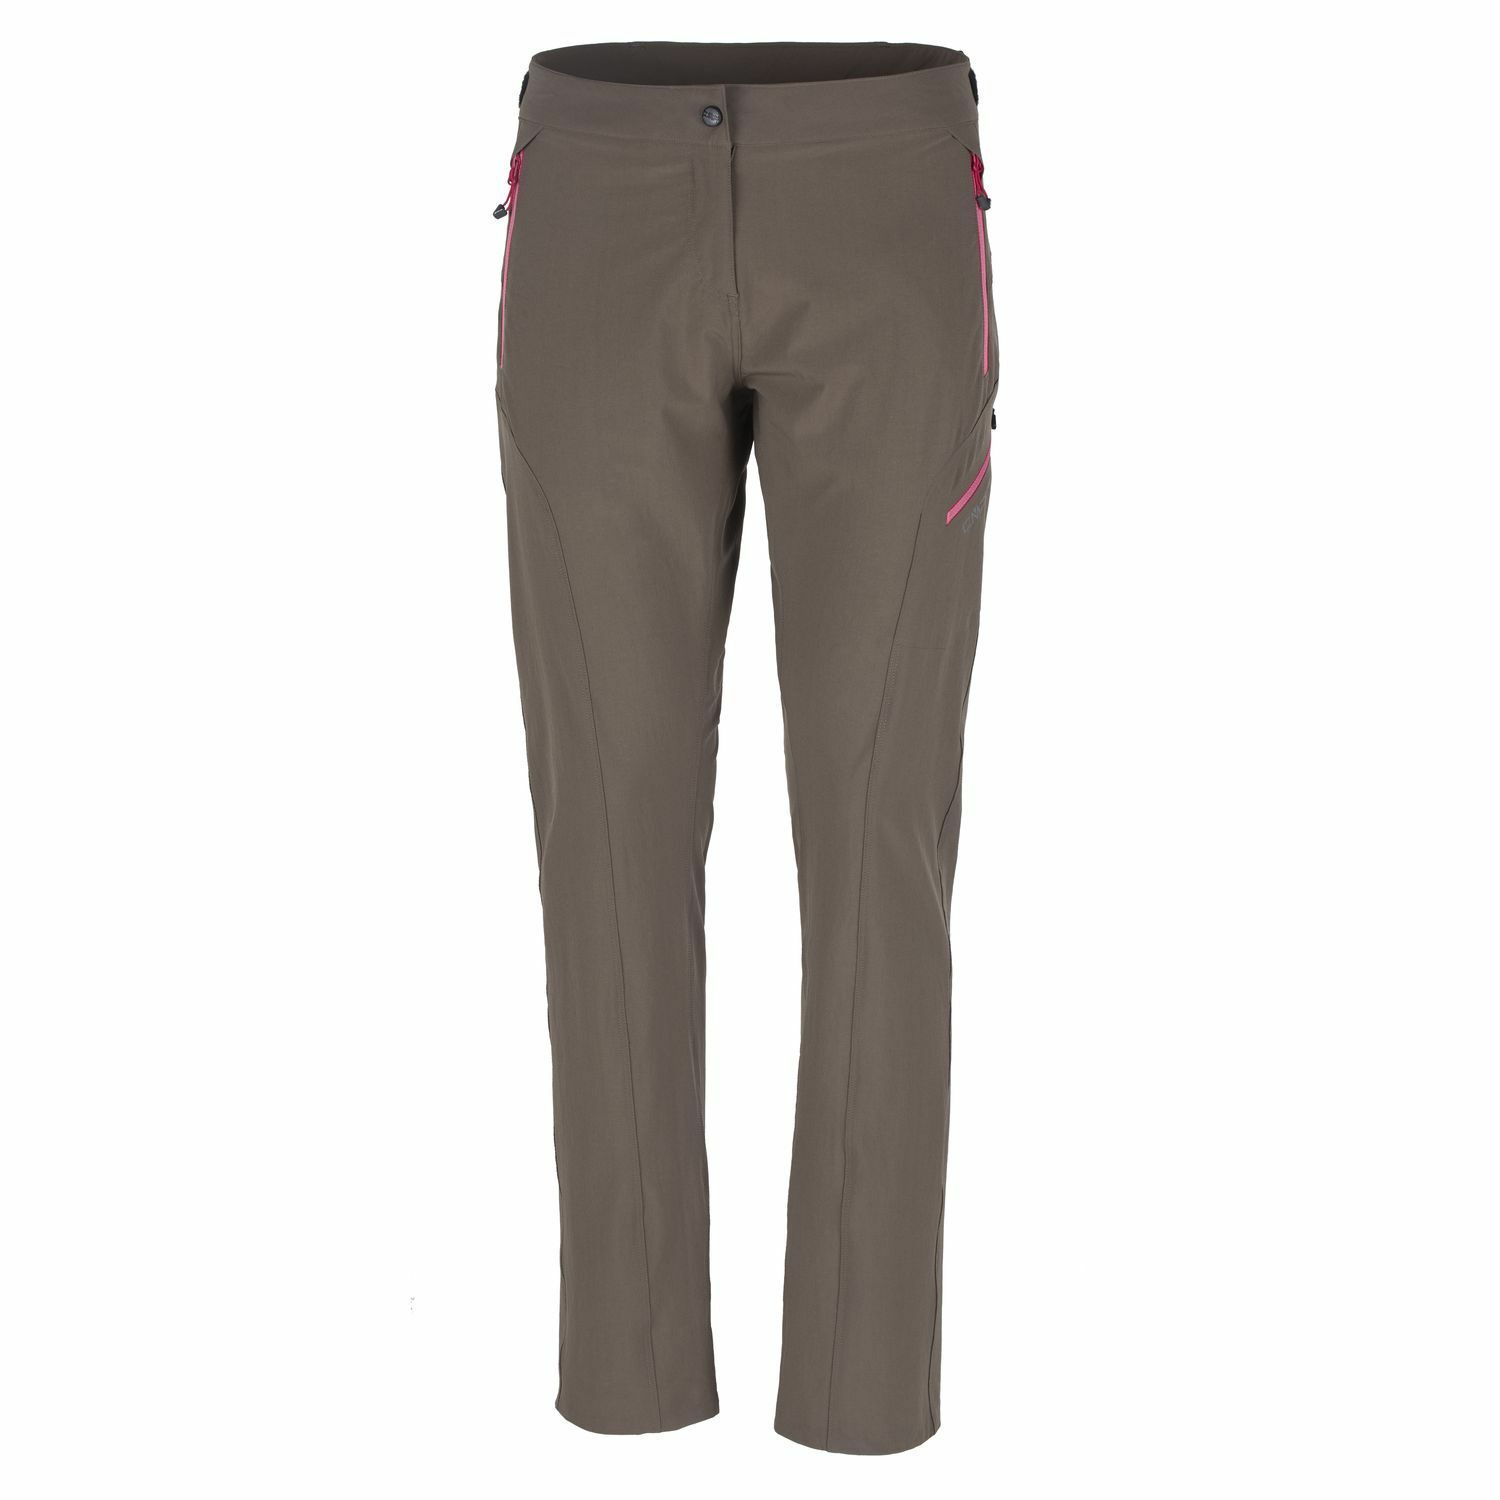 CMP Multi Sport Pants functional pants brown dryfunction Stretch